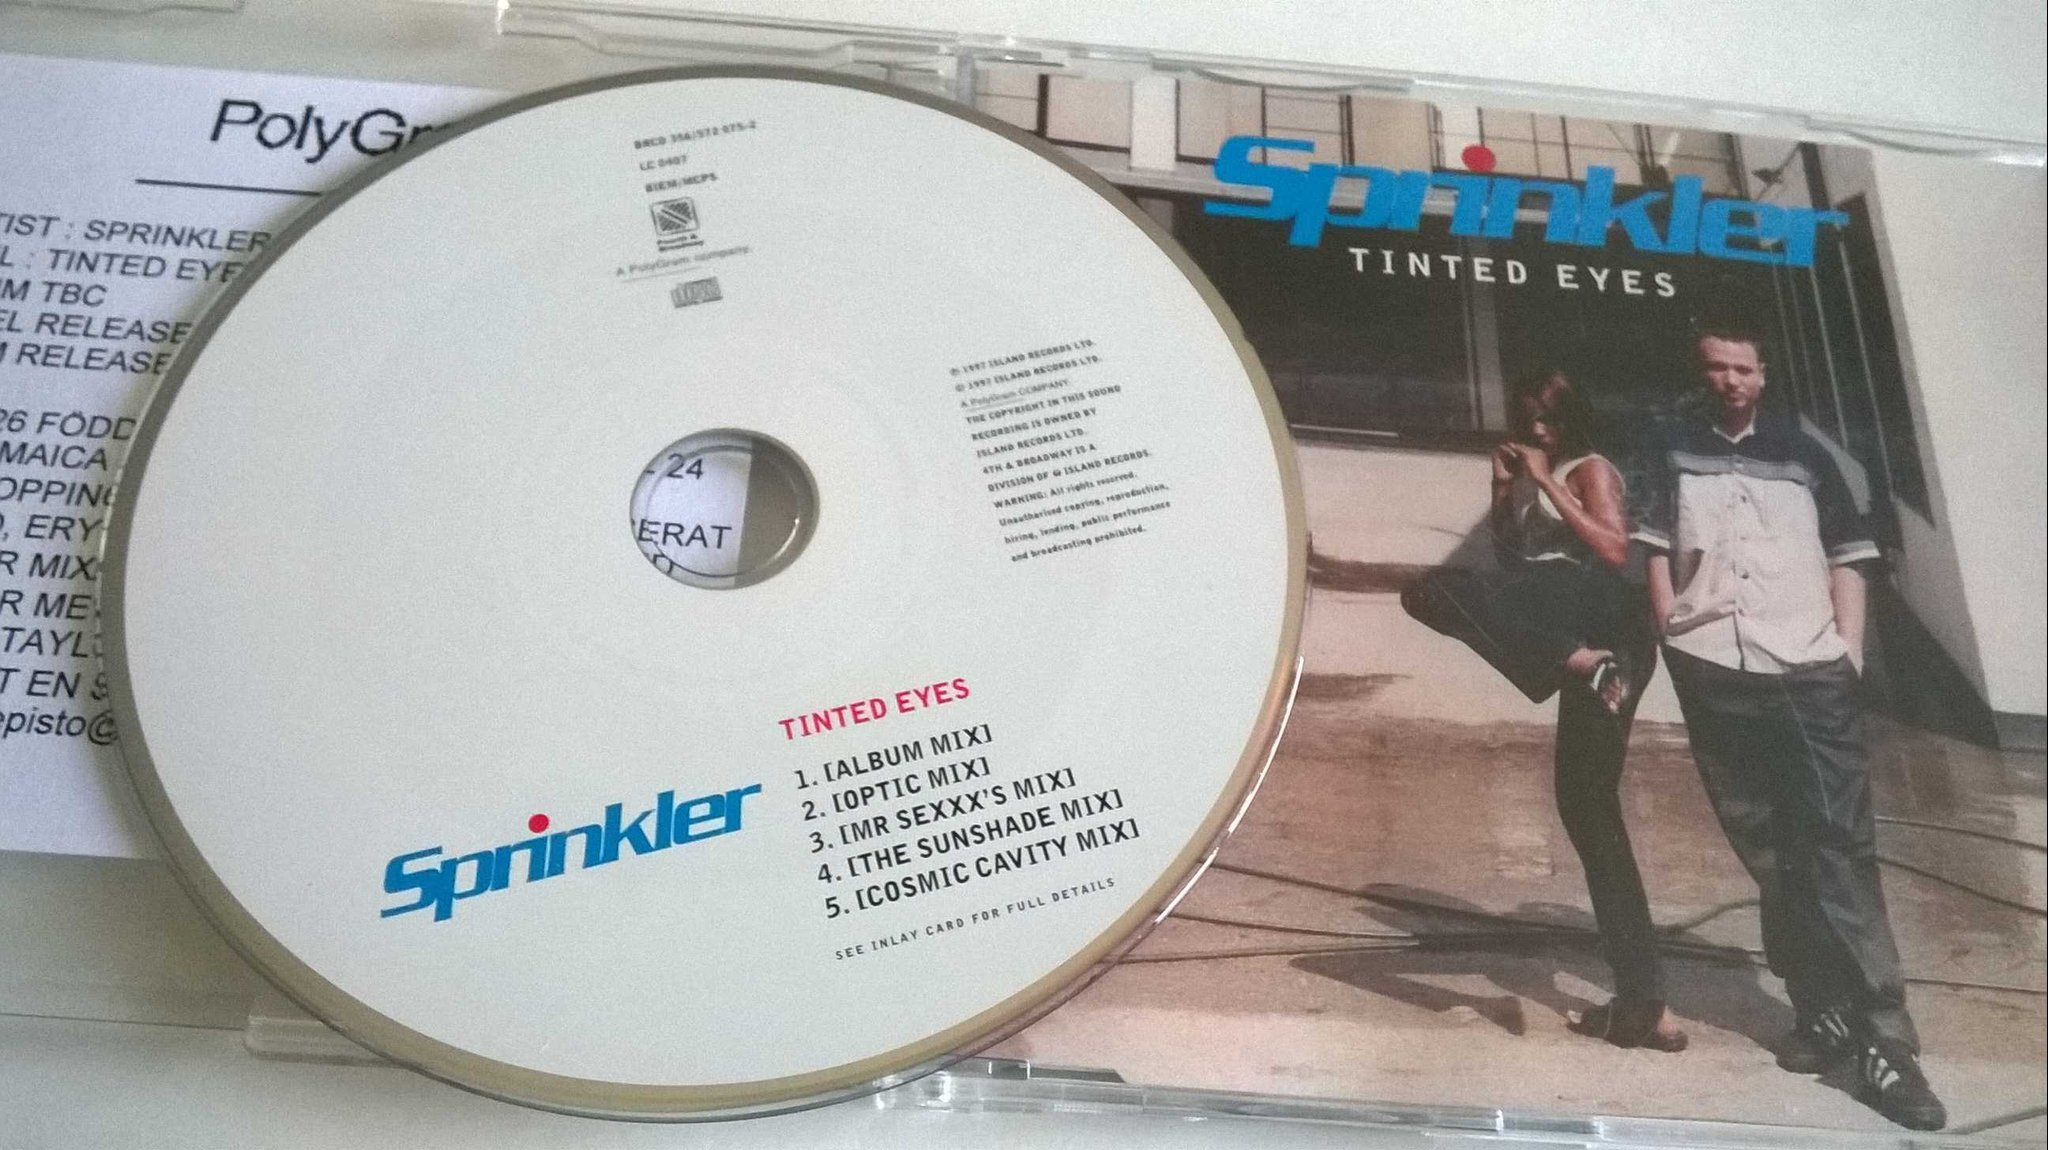 Sprinkler - Tinted Eyes, CD, Single